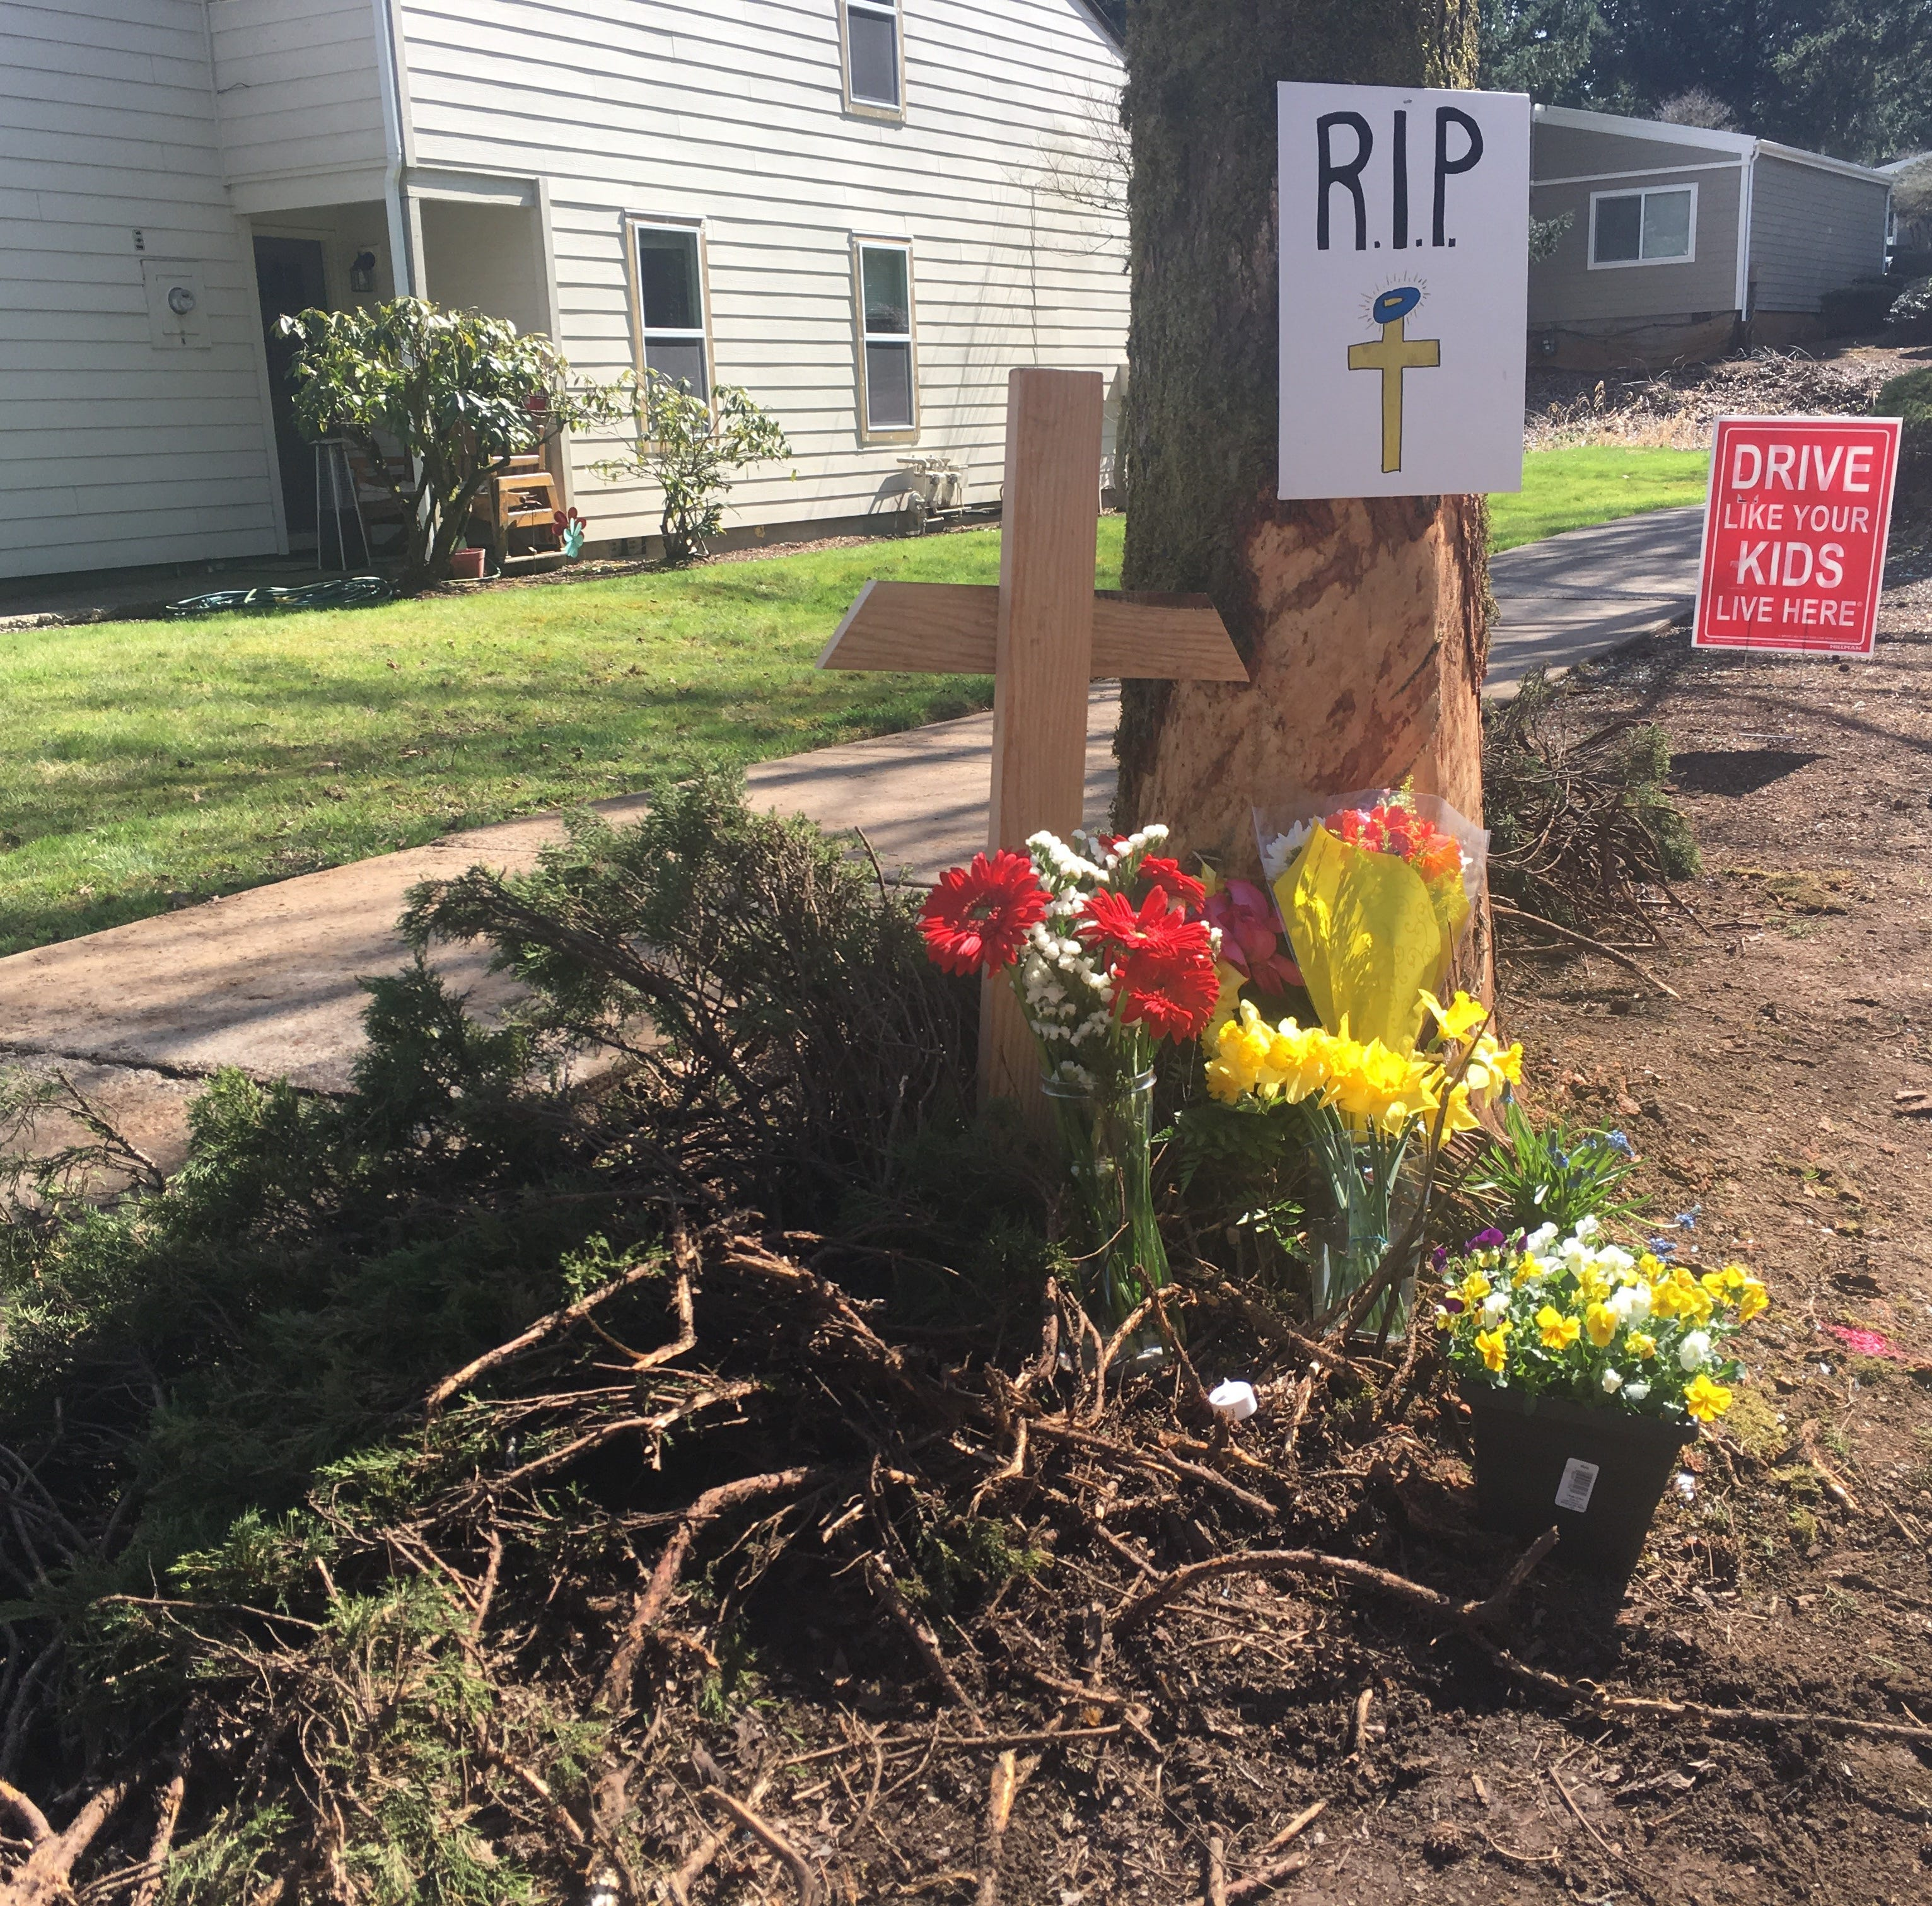 South Salem resident describes crash that killed 1, hurt 4: 'He took his last breath in my arms'